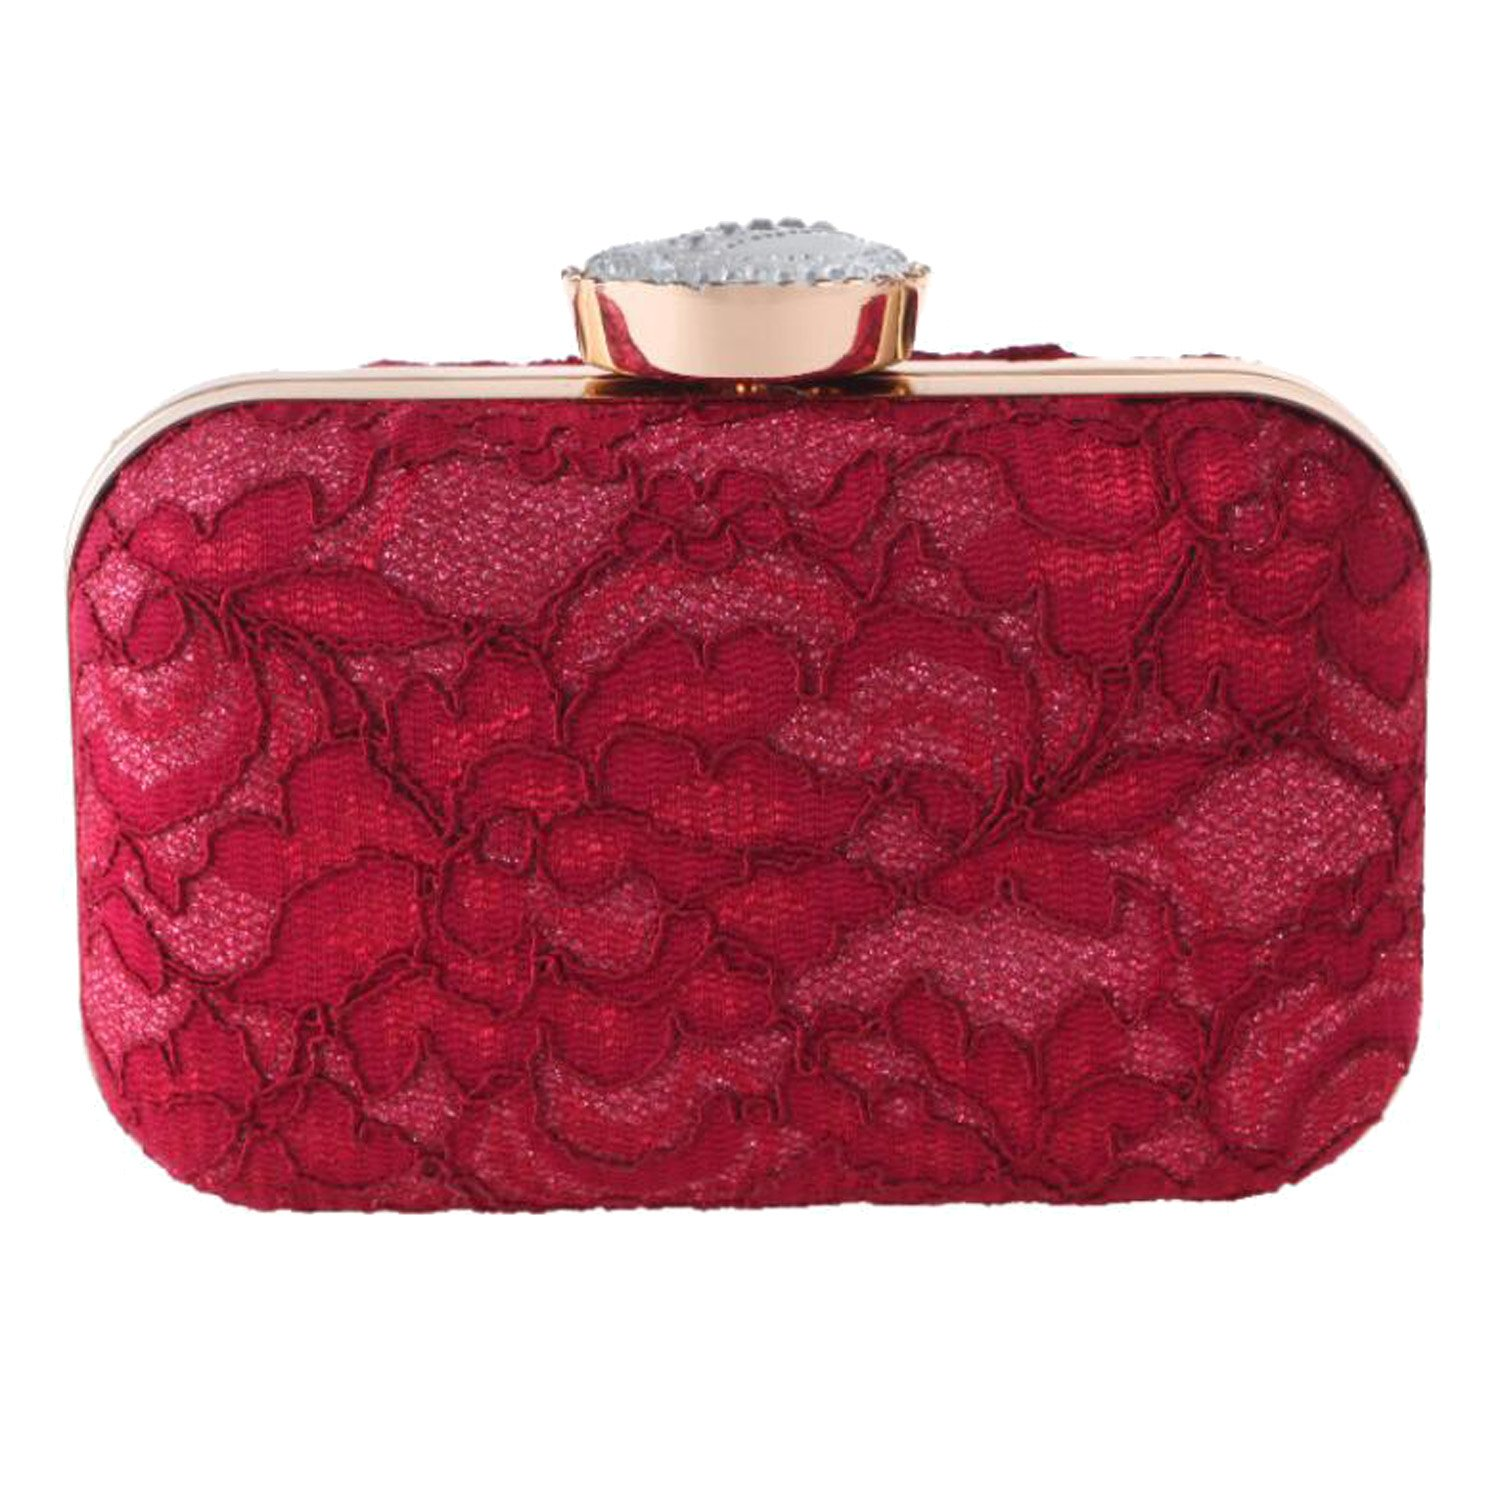 EPLAZA Women Lace Evening Clutch Bags Party Handbags Vintage Bridal Wedding Purse (burgundy)